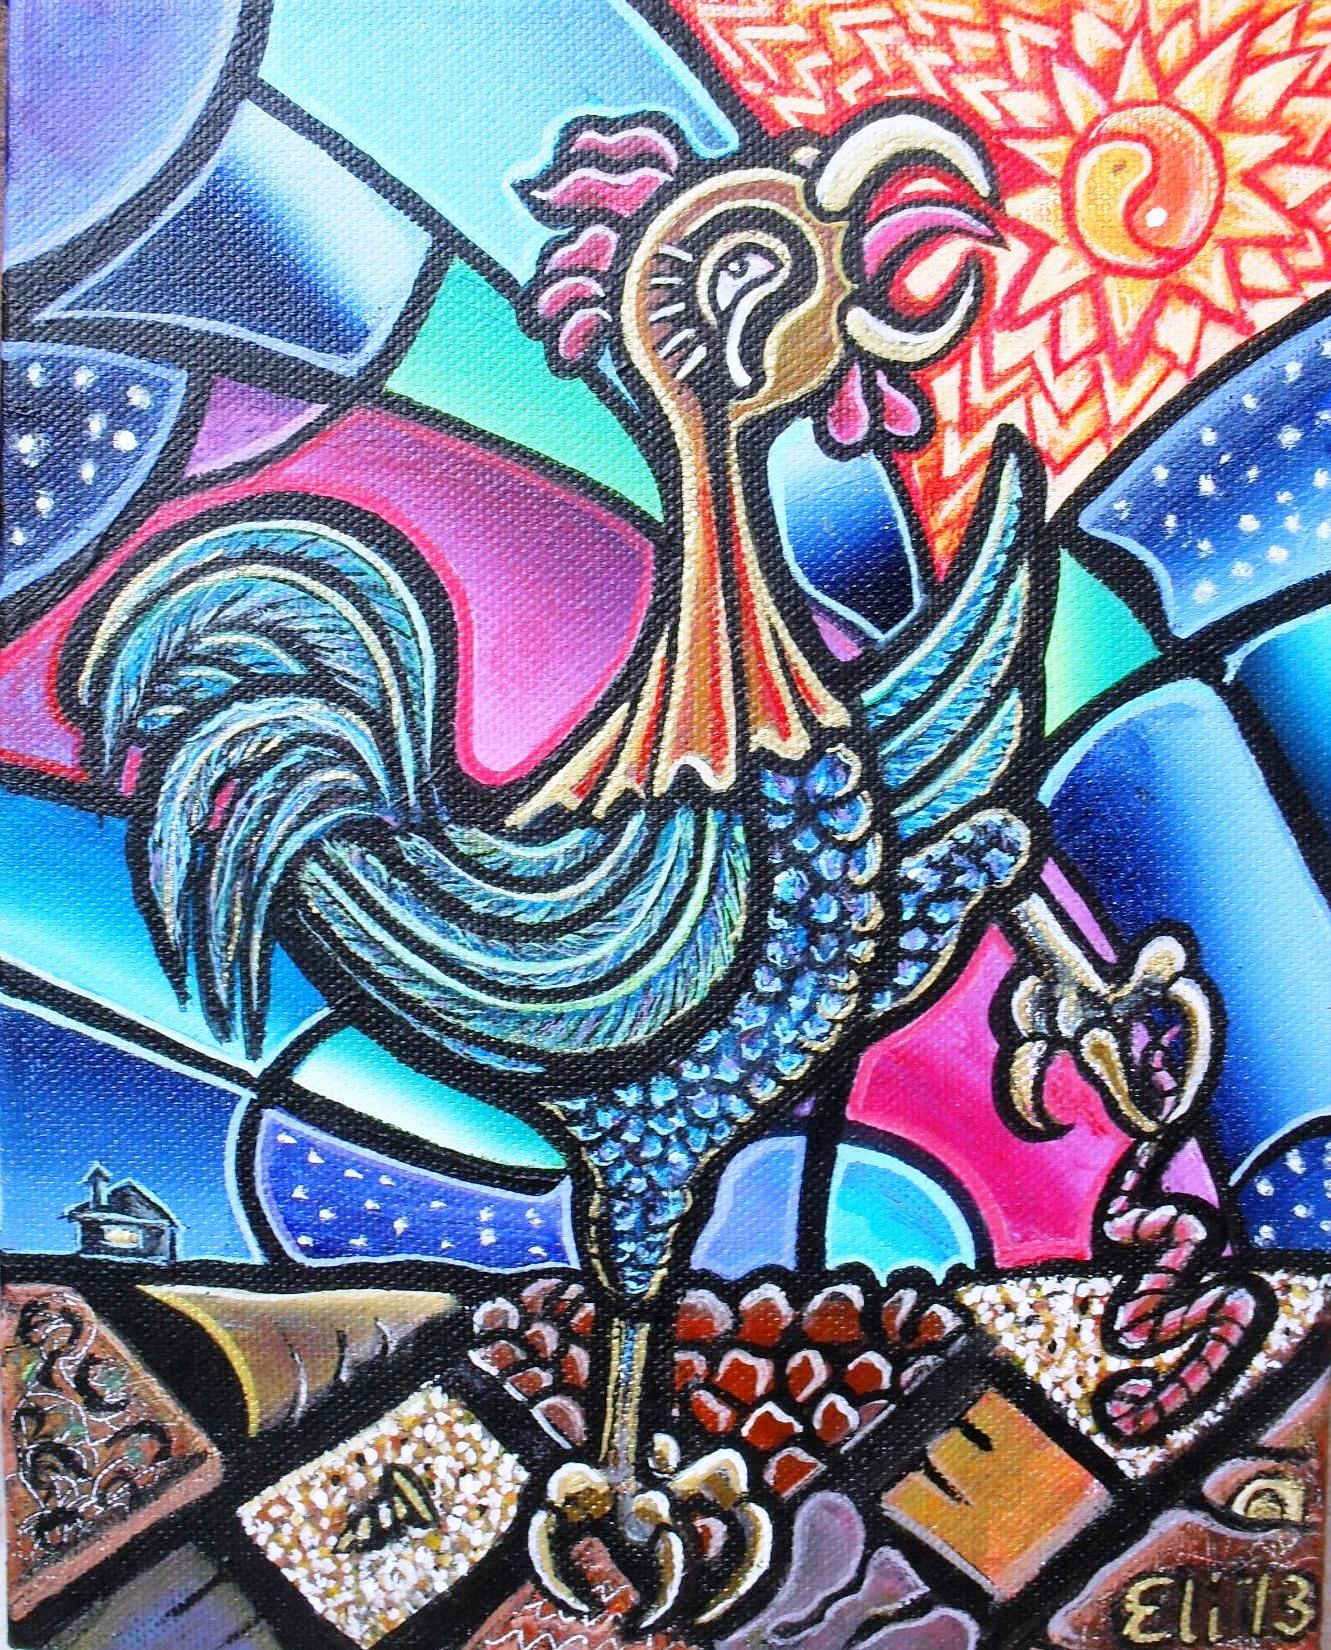 Artista Eli - Año del Gallo - Year of the Rooster - Acrílico sobre Lienzo - Acrylic on Canvas - 2013 10 x 8 x 1.5 inches